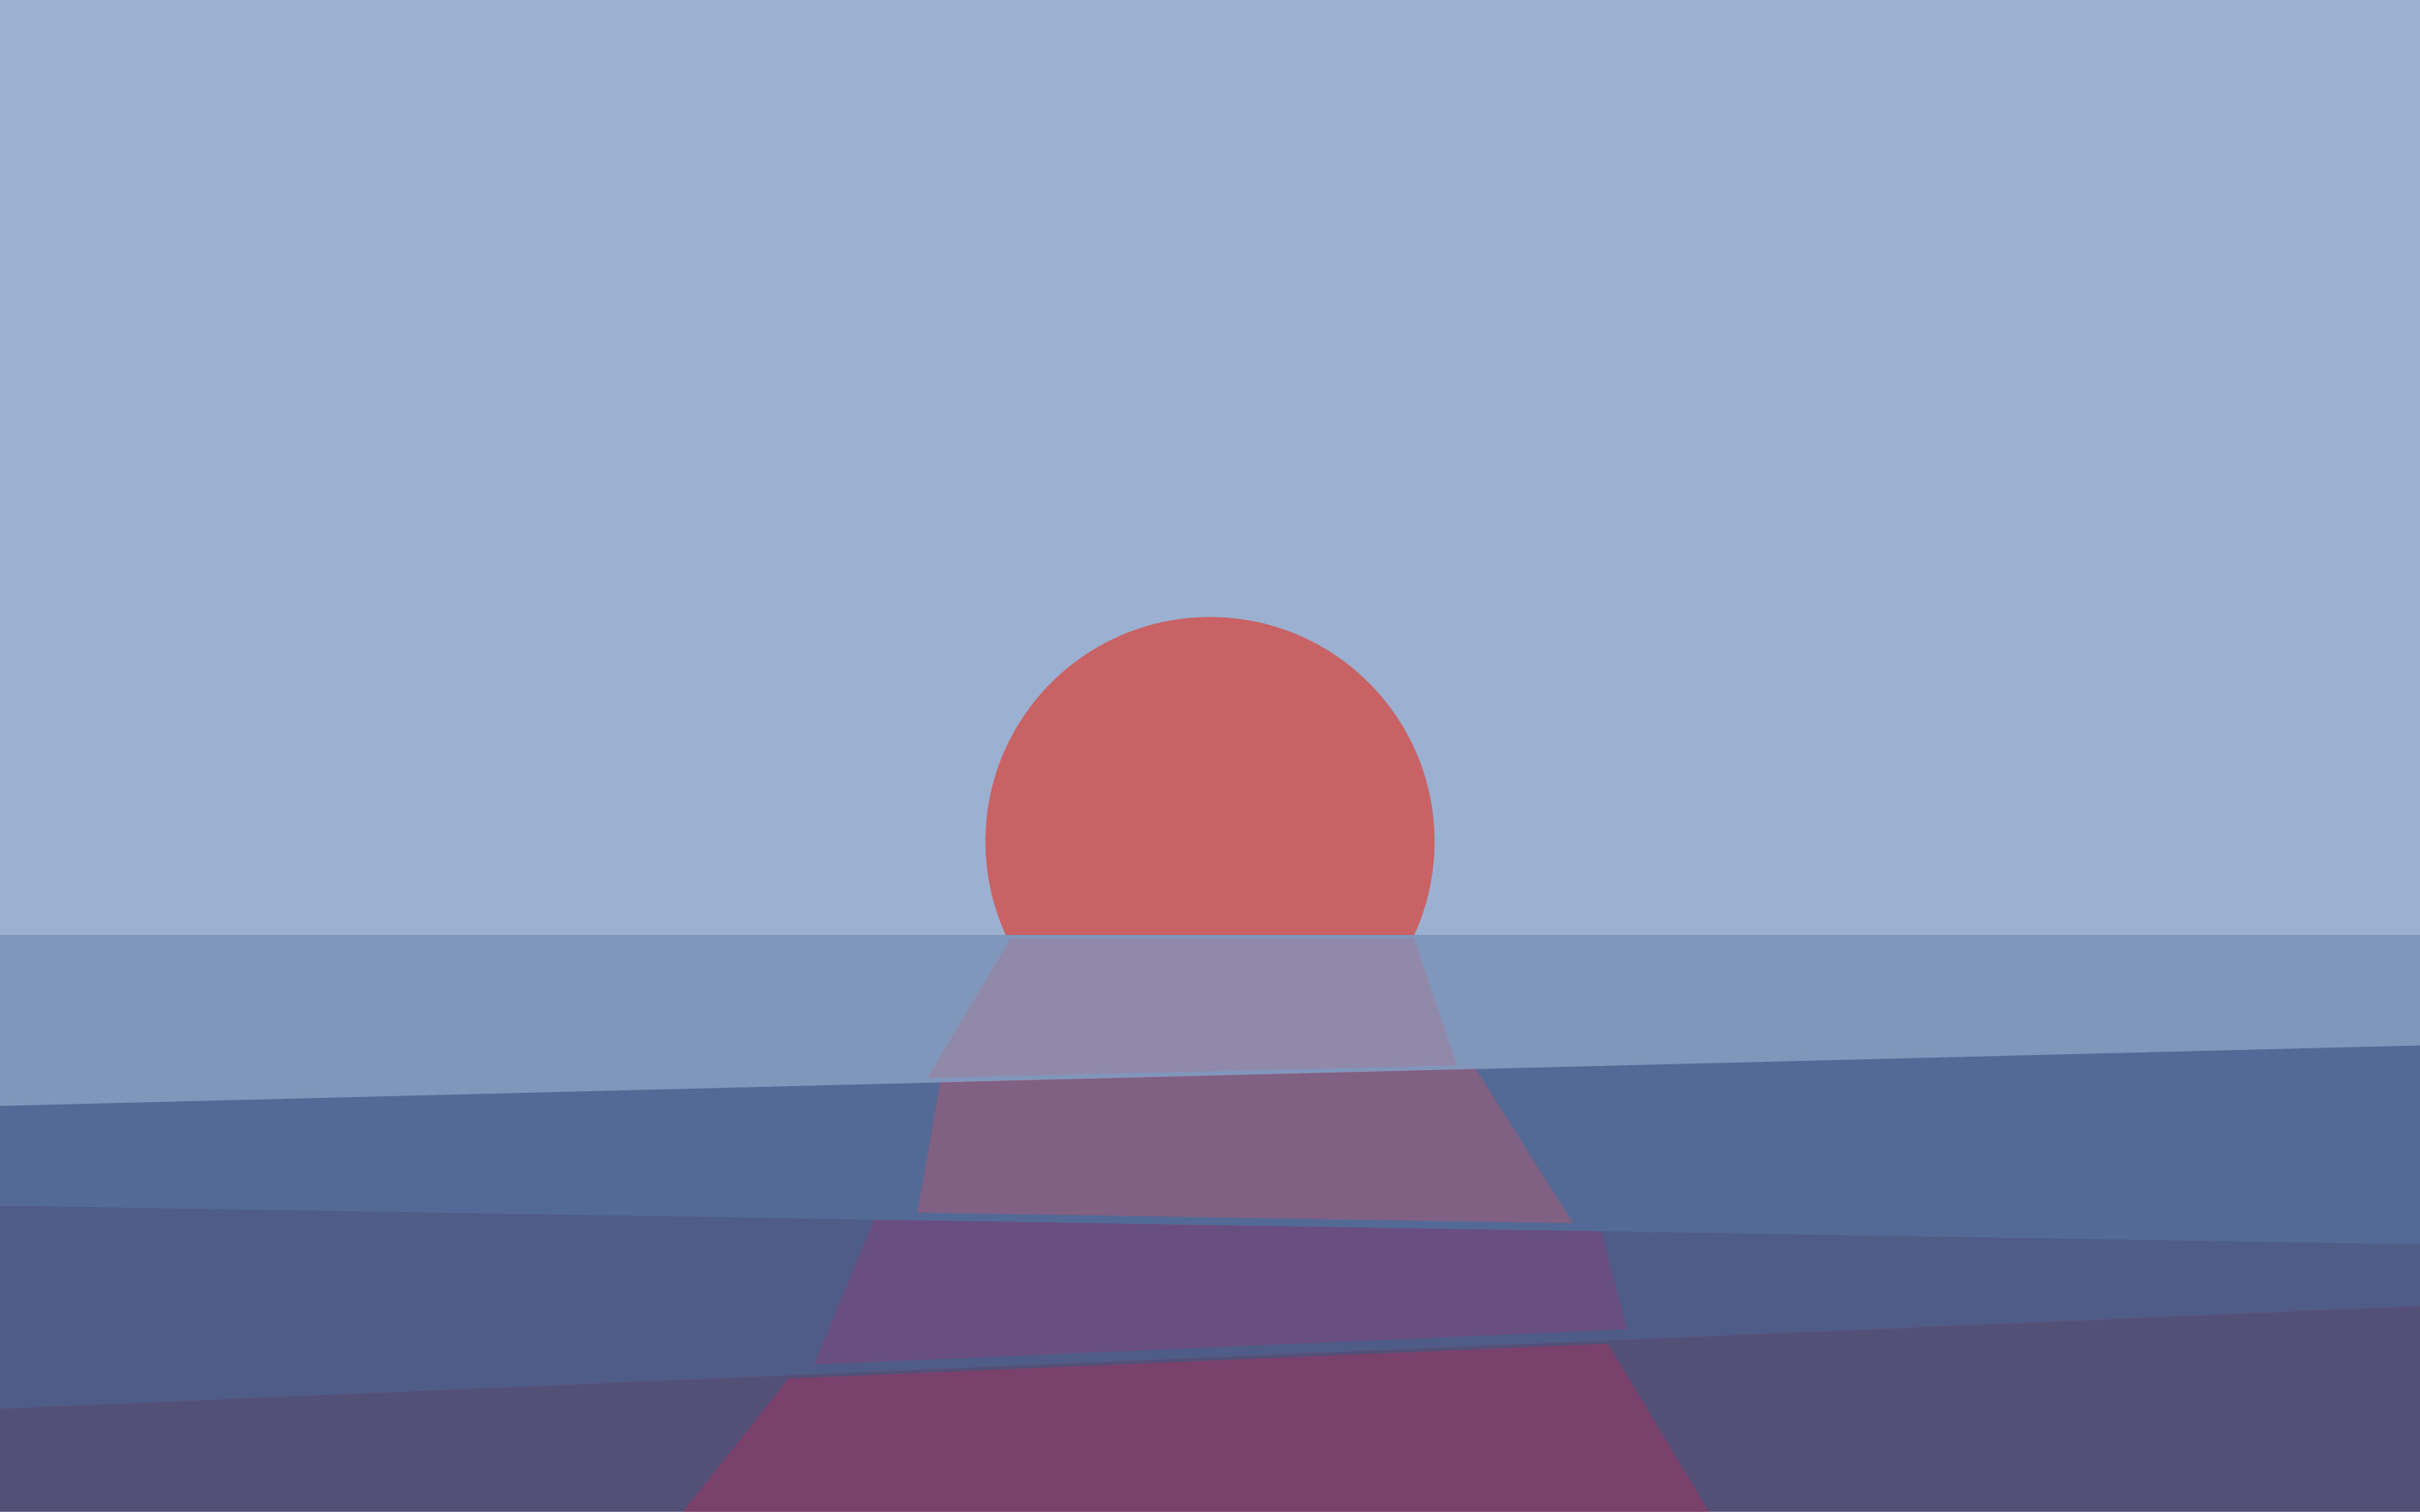 2880x1800 tumblr_static_summer_sunset_created_by_-_marilou Poly-Lakeside  wall_whiteonblue minimal-retro